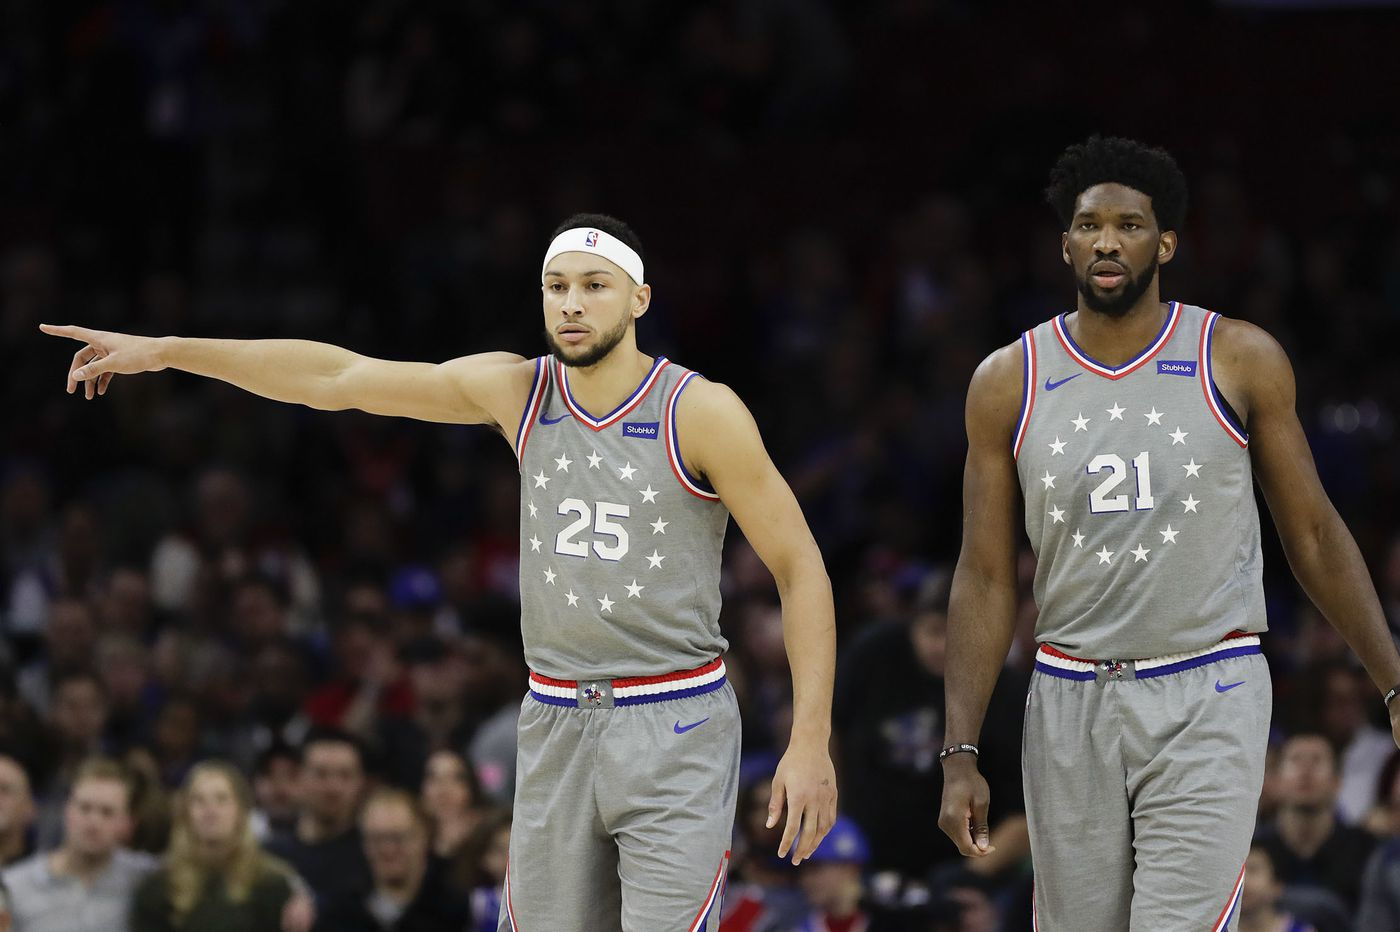 brand new 29653 0a485 Sixers receive 'Earned Edition' uniforms in honor of playoff ...